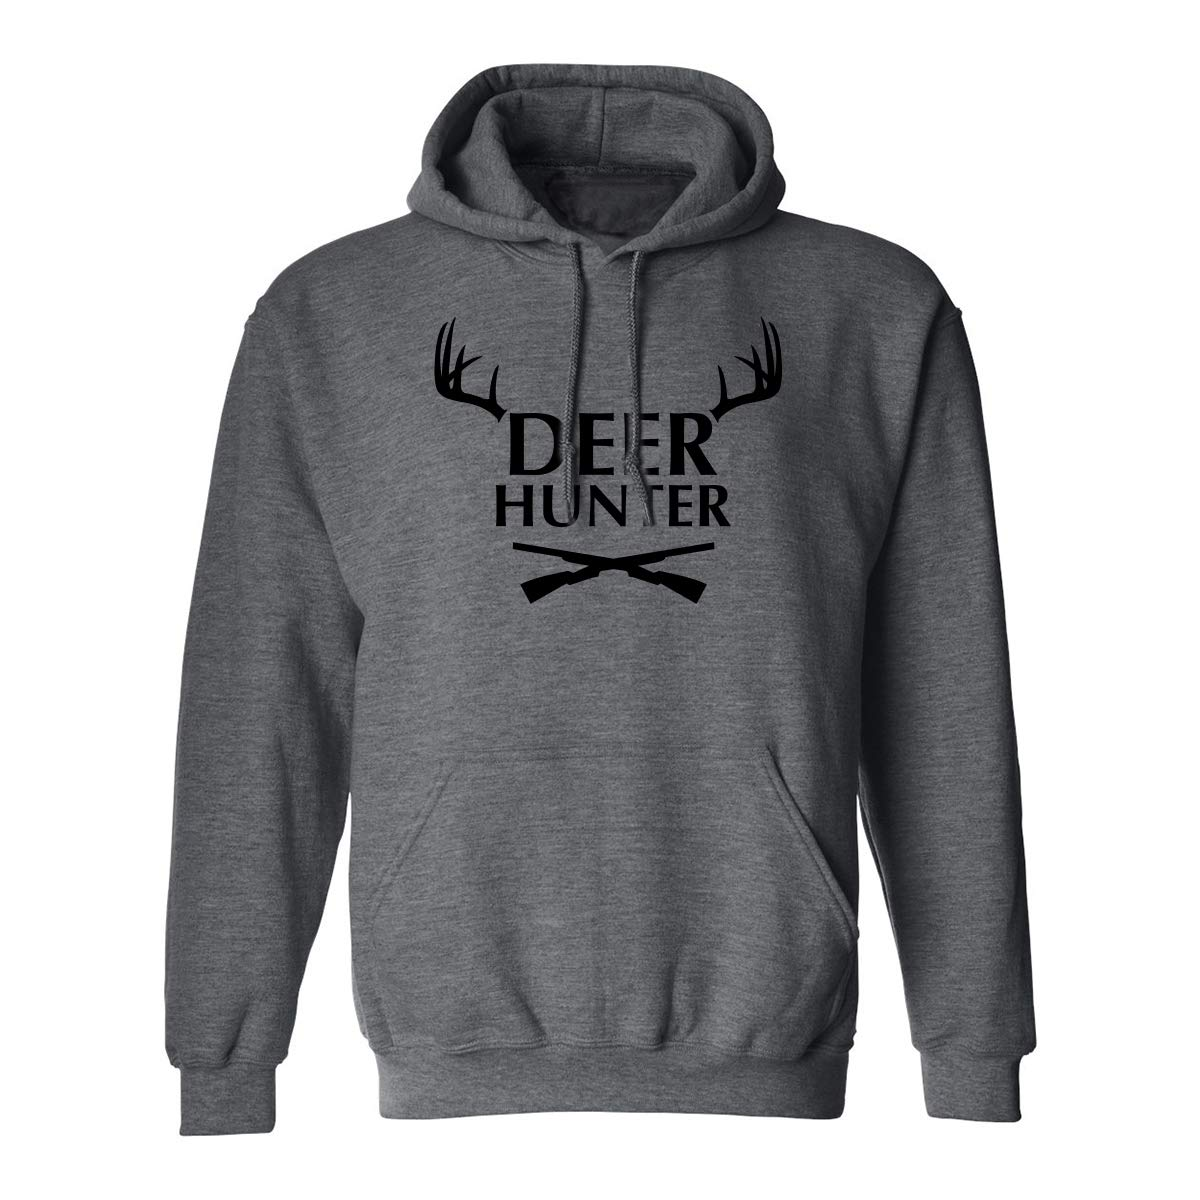 Deer Hunter Adult Hooded Sweatshirt